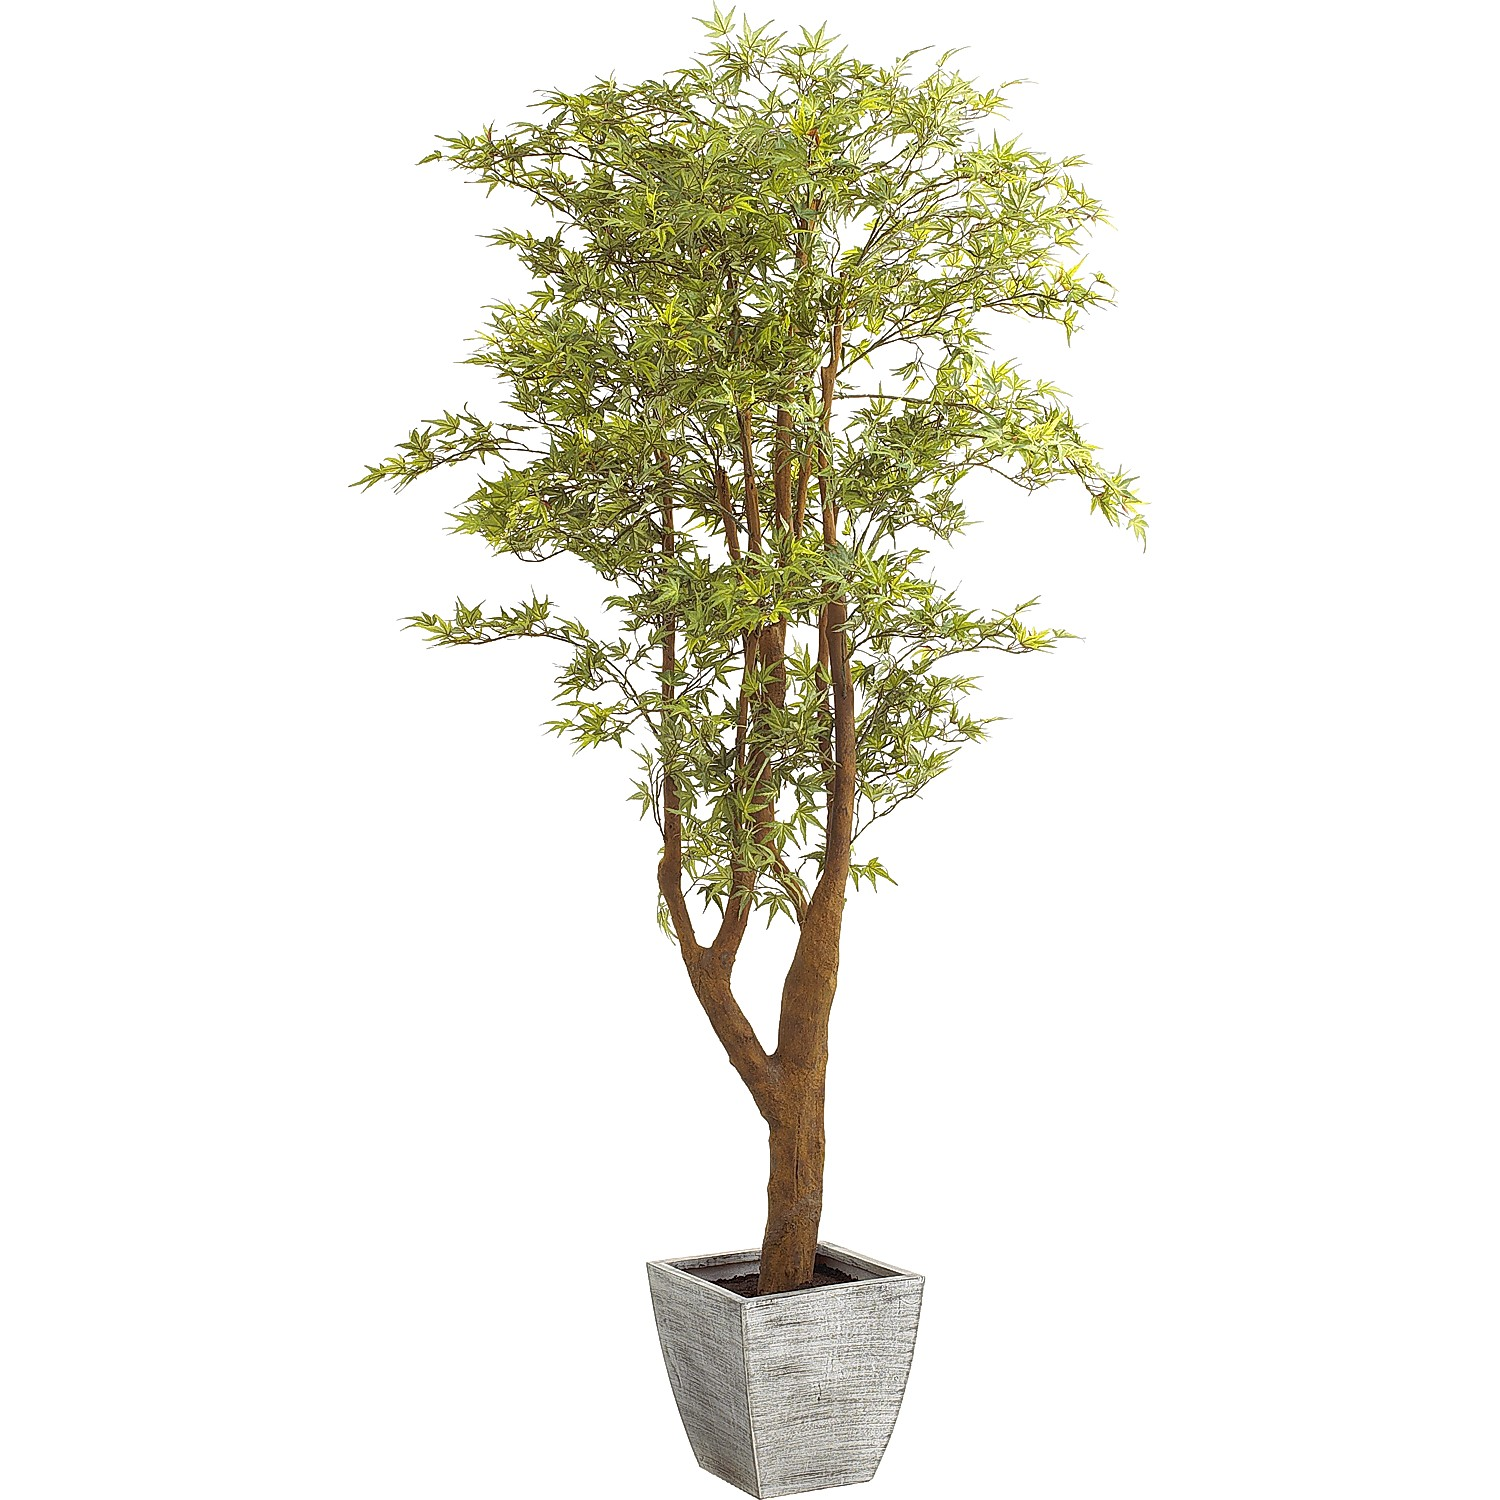 6' Artificial Japanese Maple Tree in Silver Pot